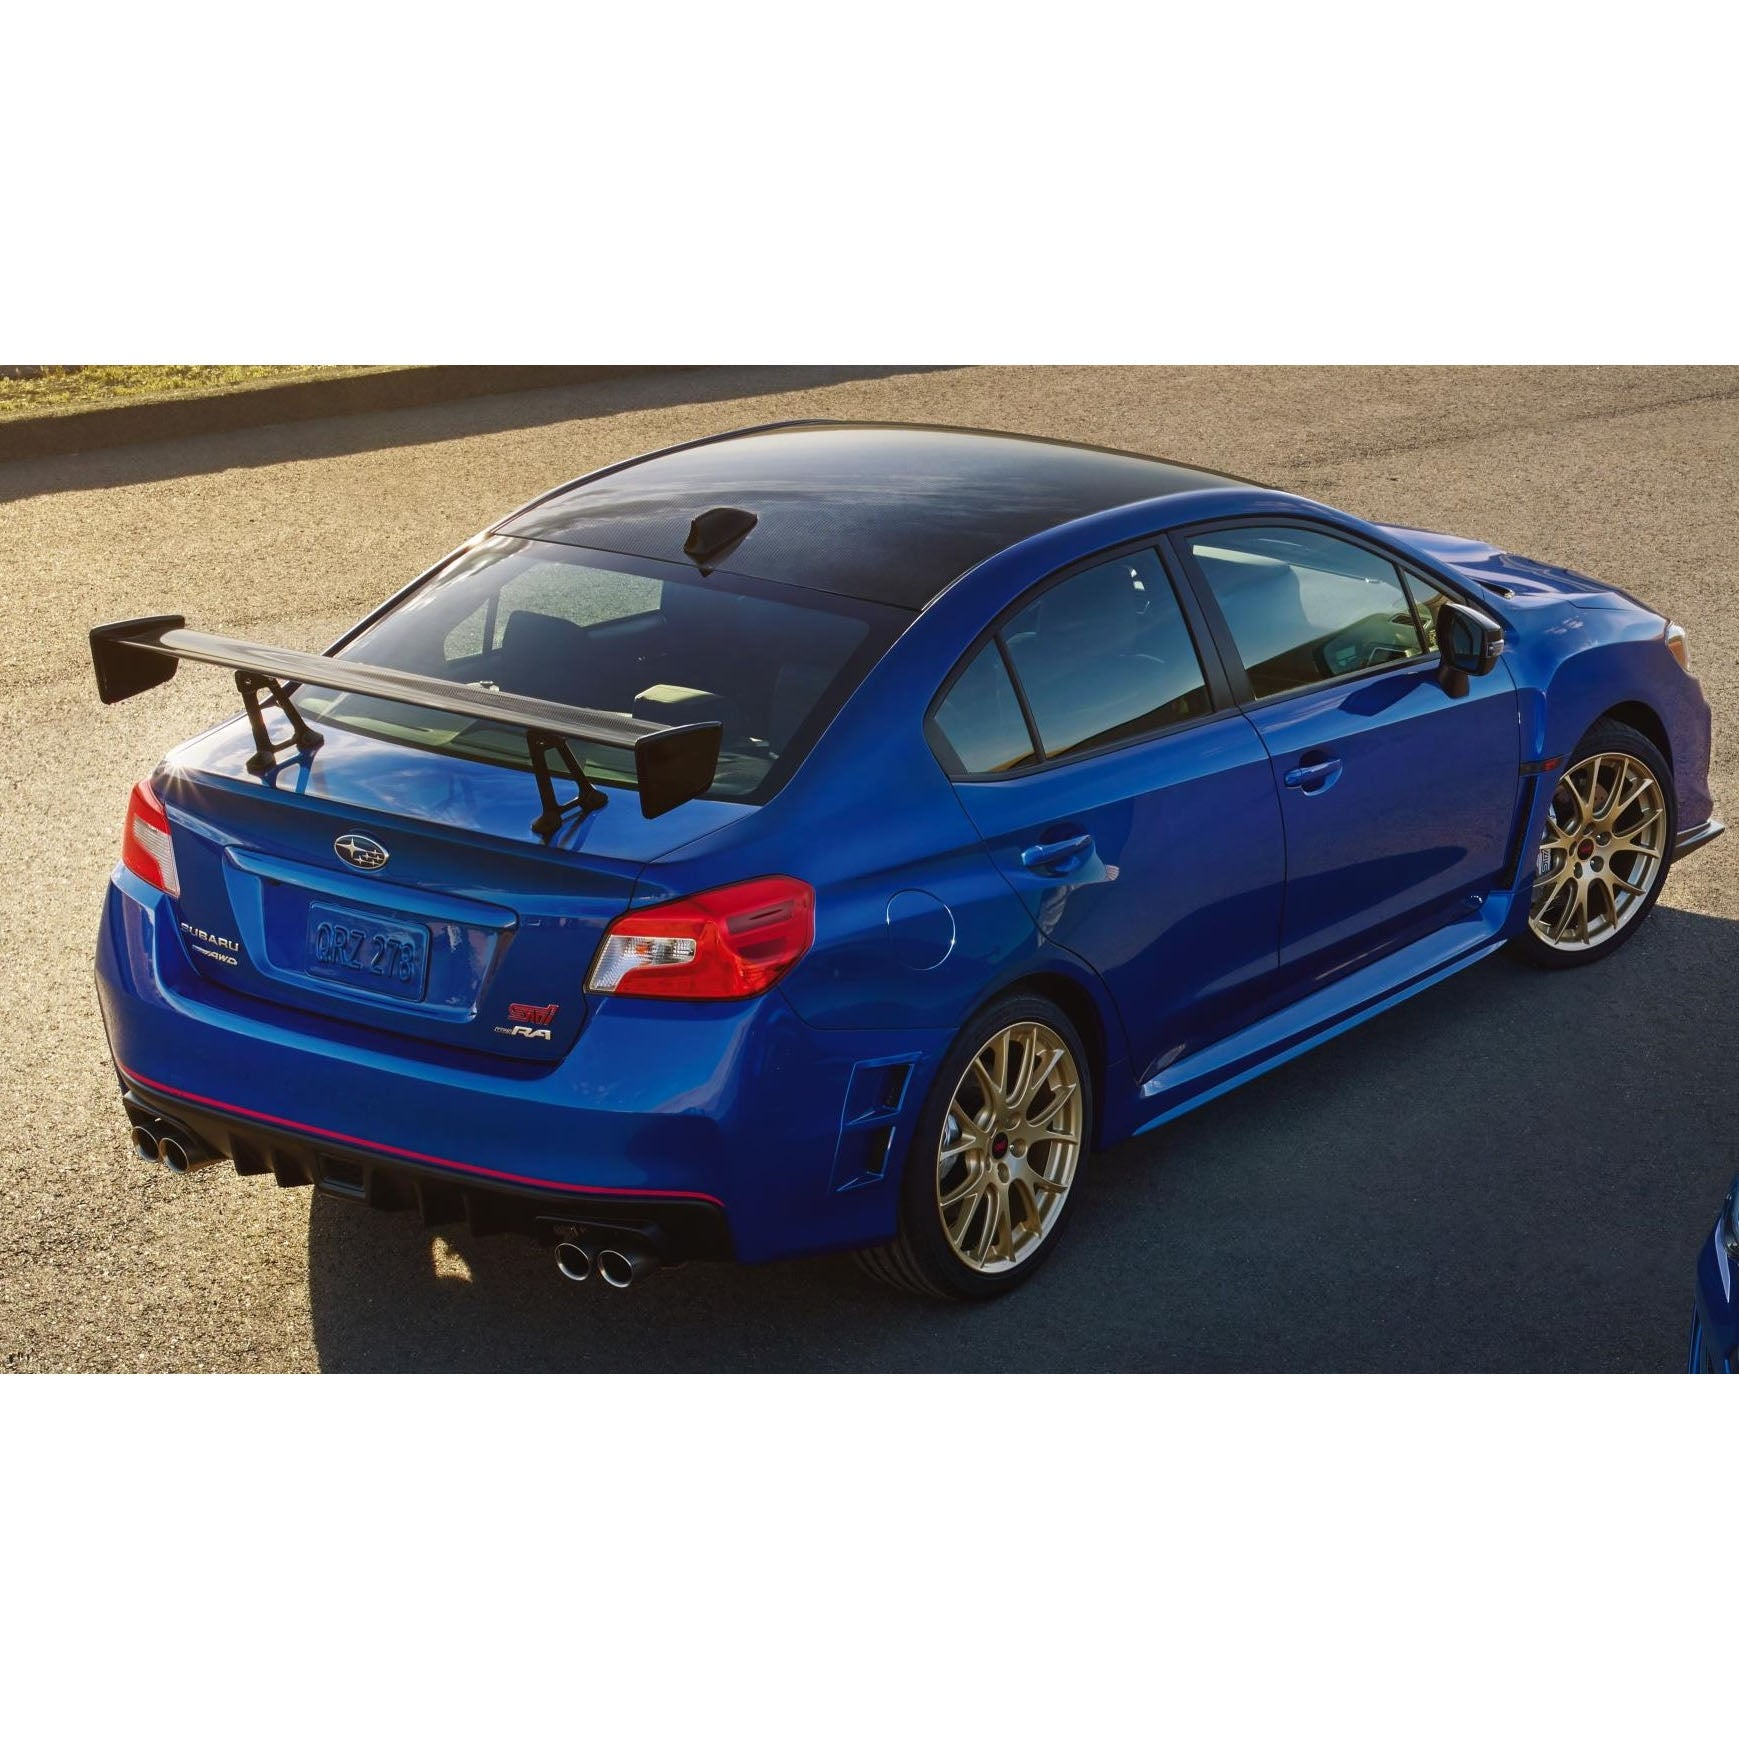 Subaru Wrx Sti For Sale >> Subaru WRX STI Type RA Carbon Fiber Rear Wing | FastWRX.com